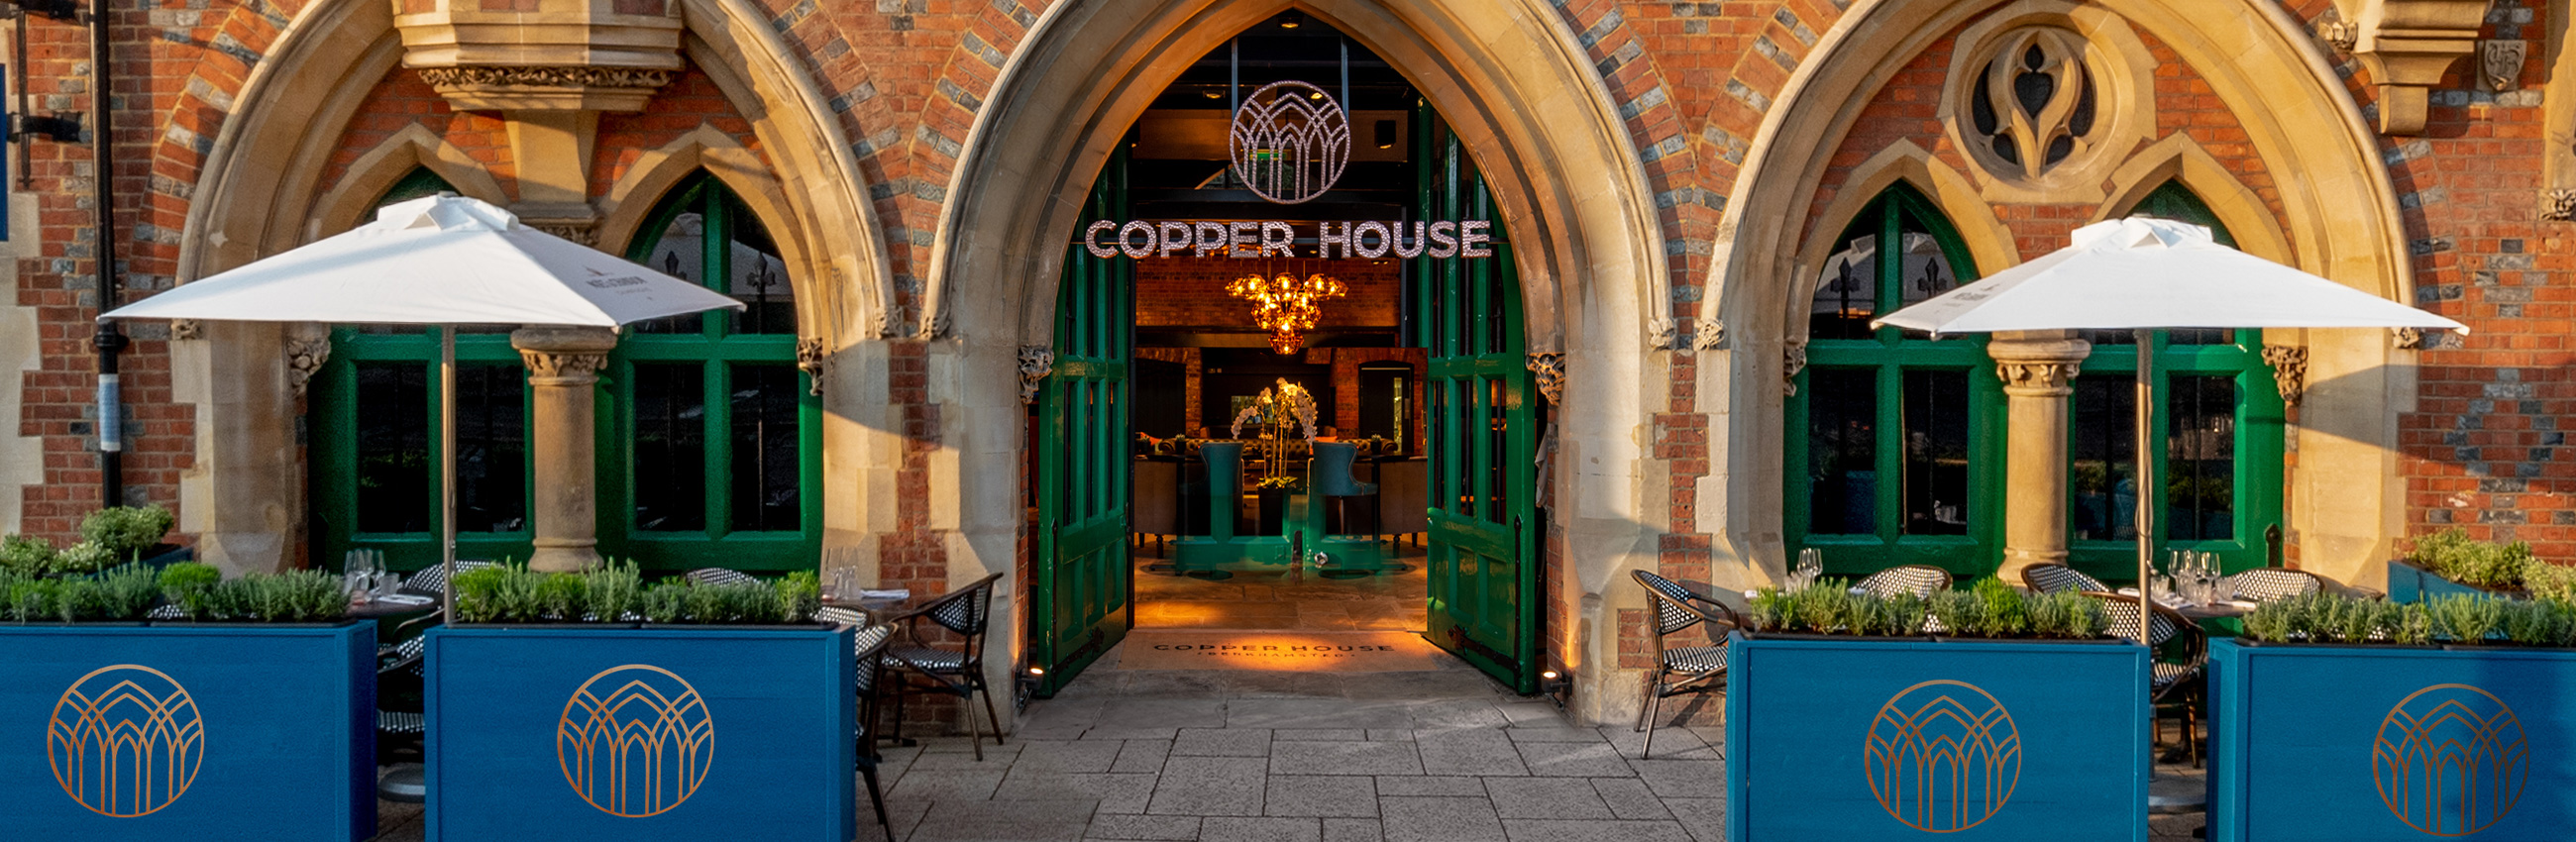 Copper House Bar – Outside, early evening